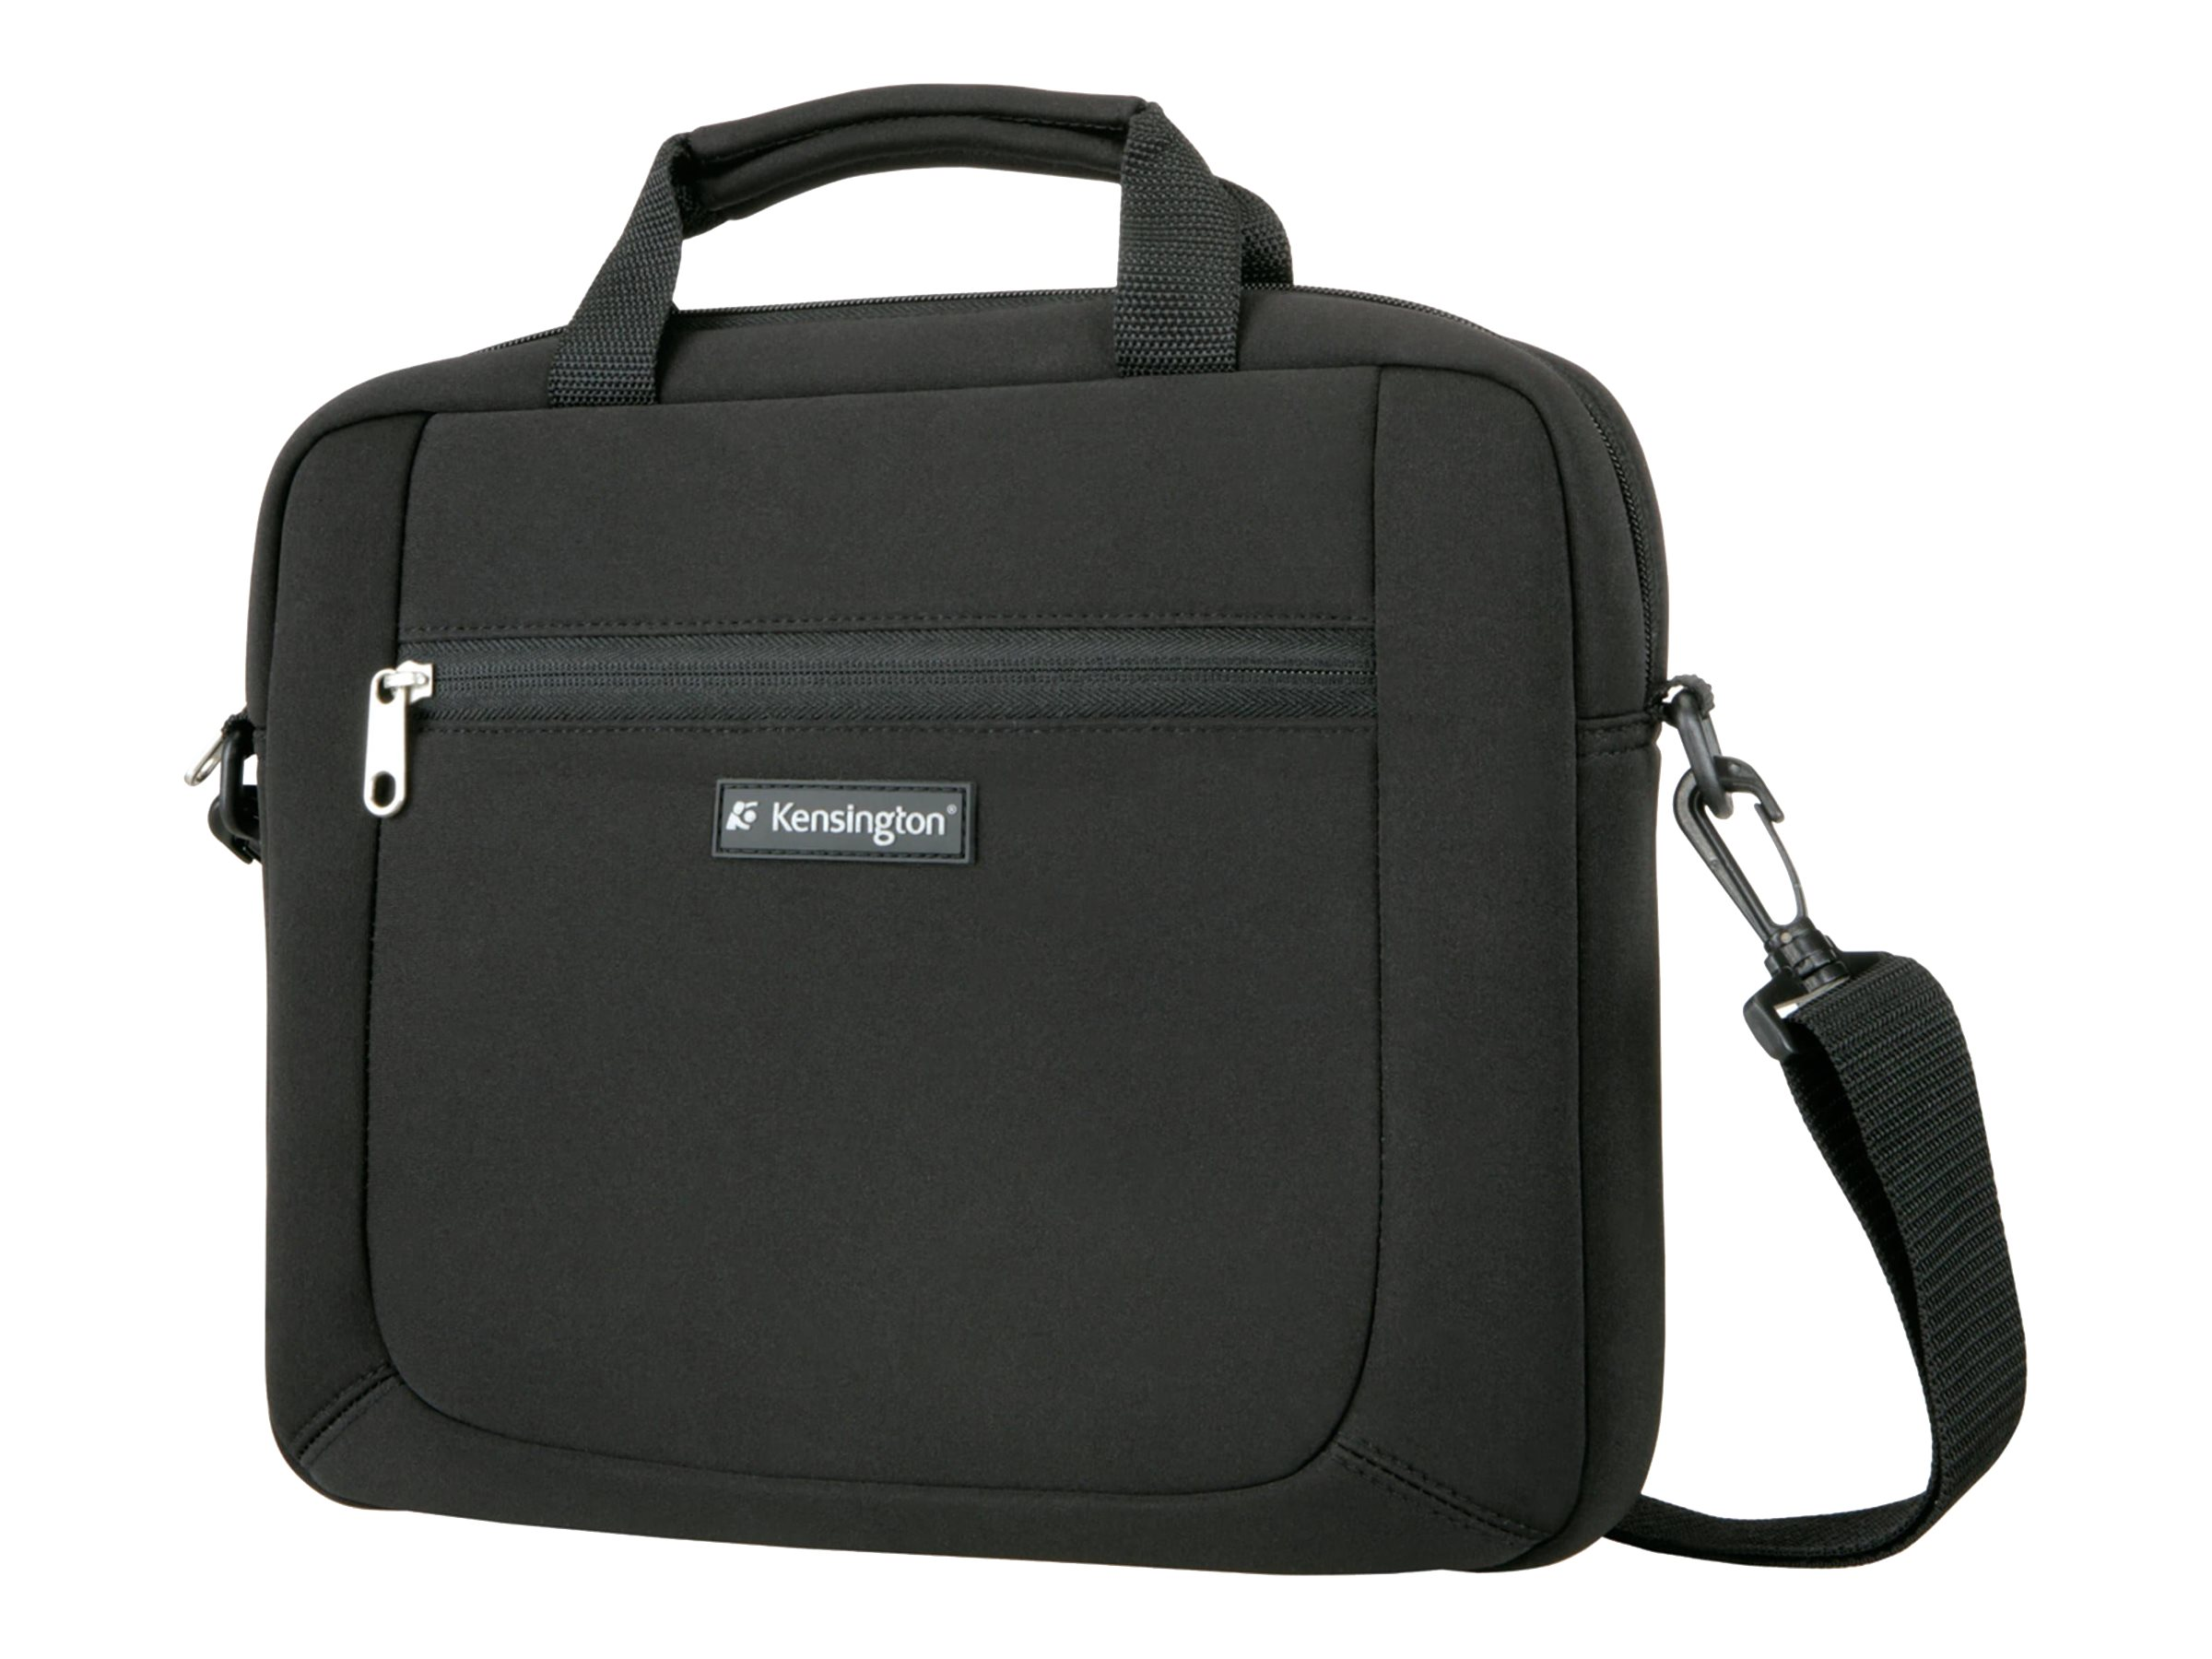 Kensington Simply Portable Neoprene Sleeve, Black, K62569USA